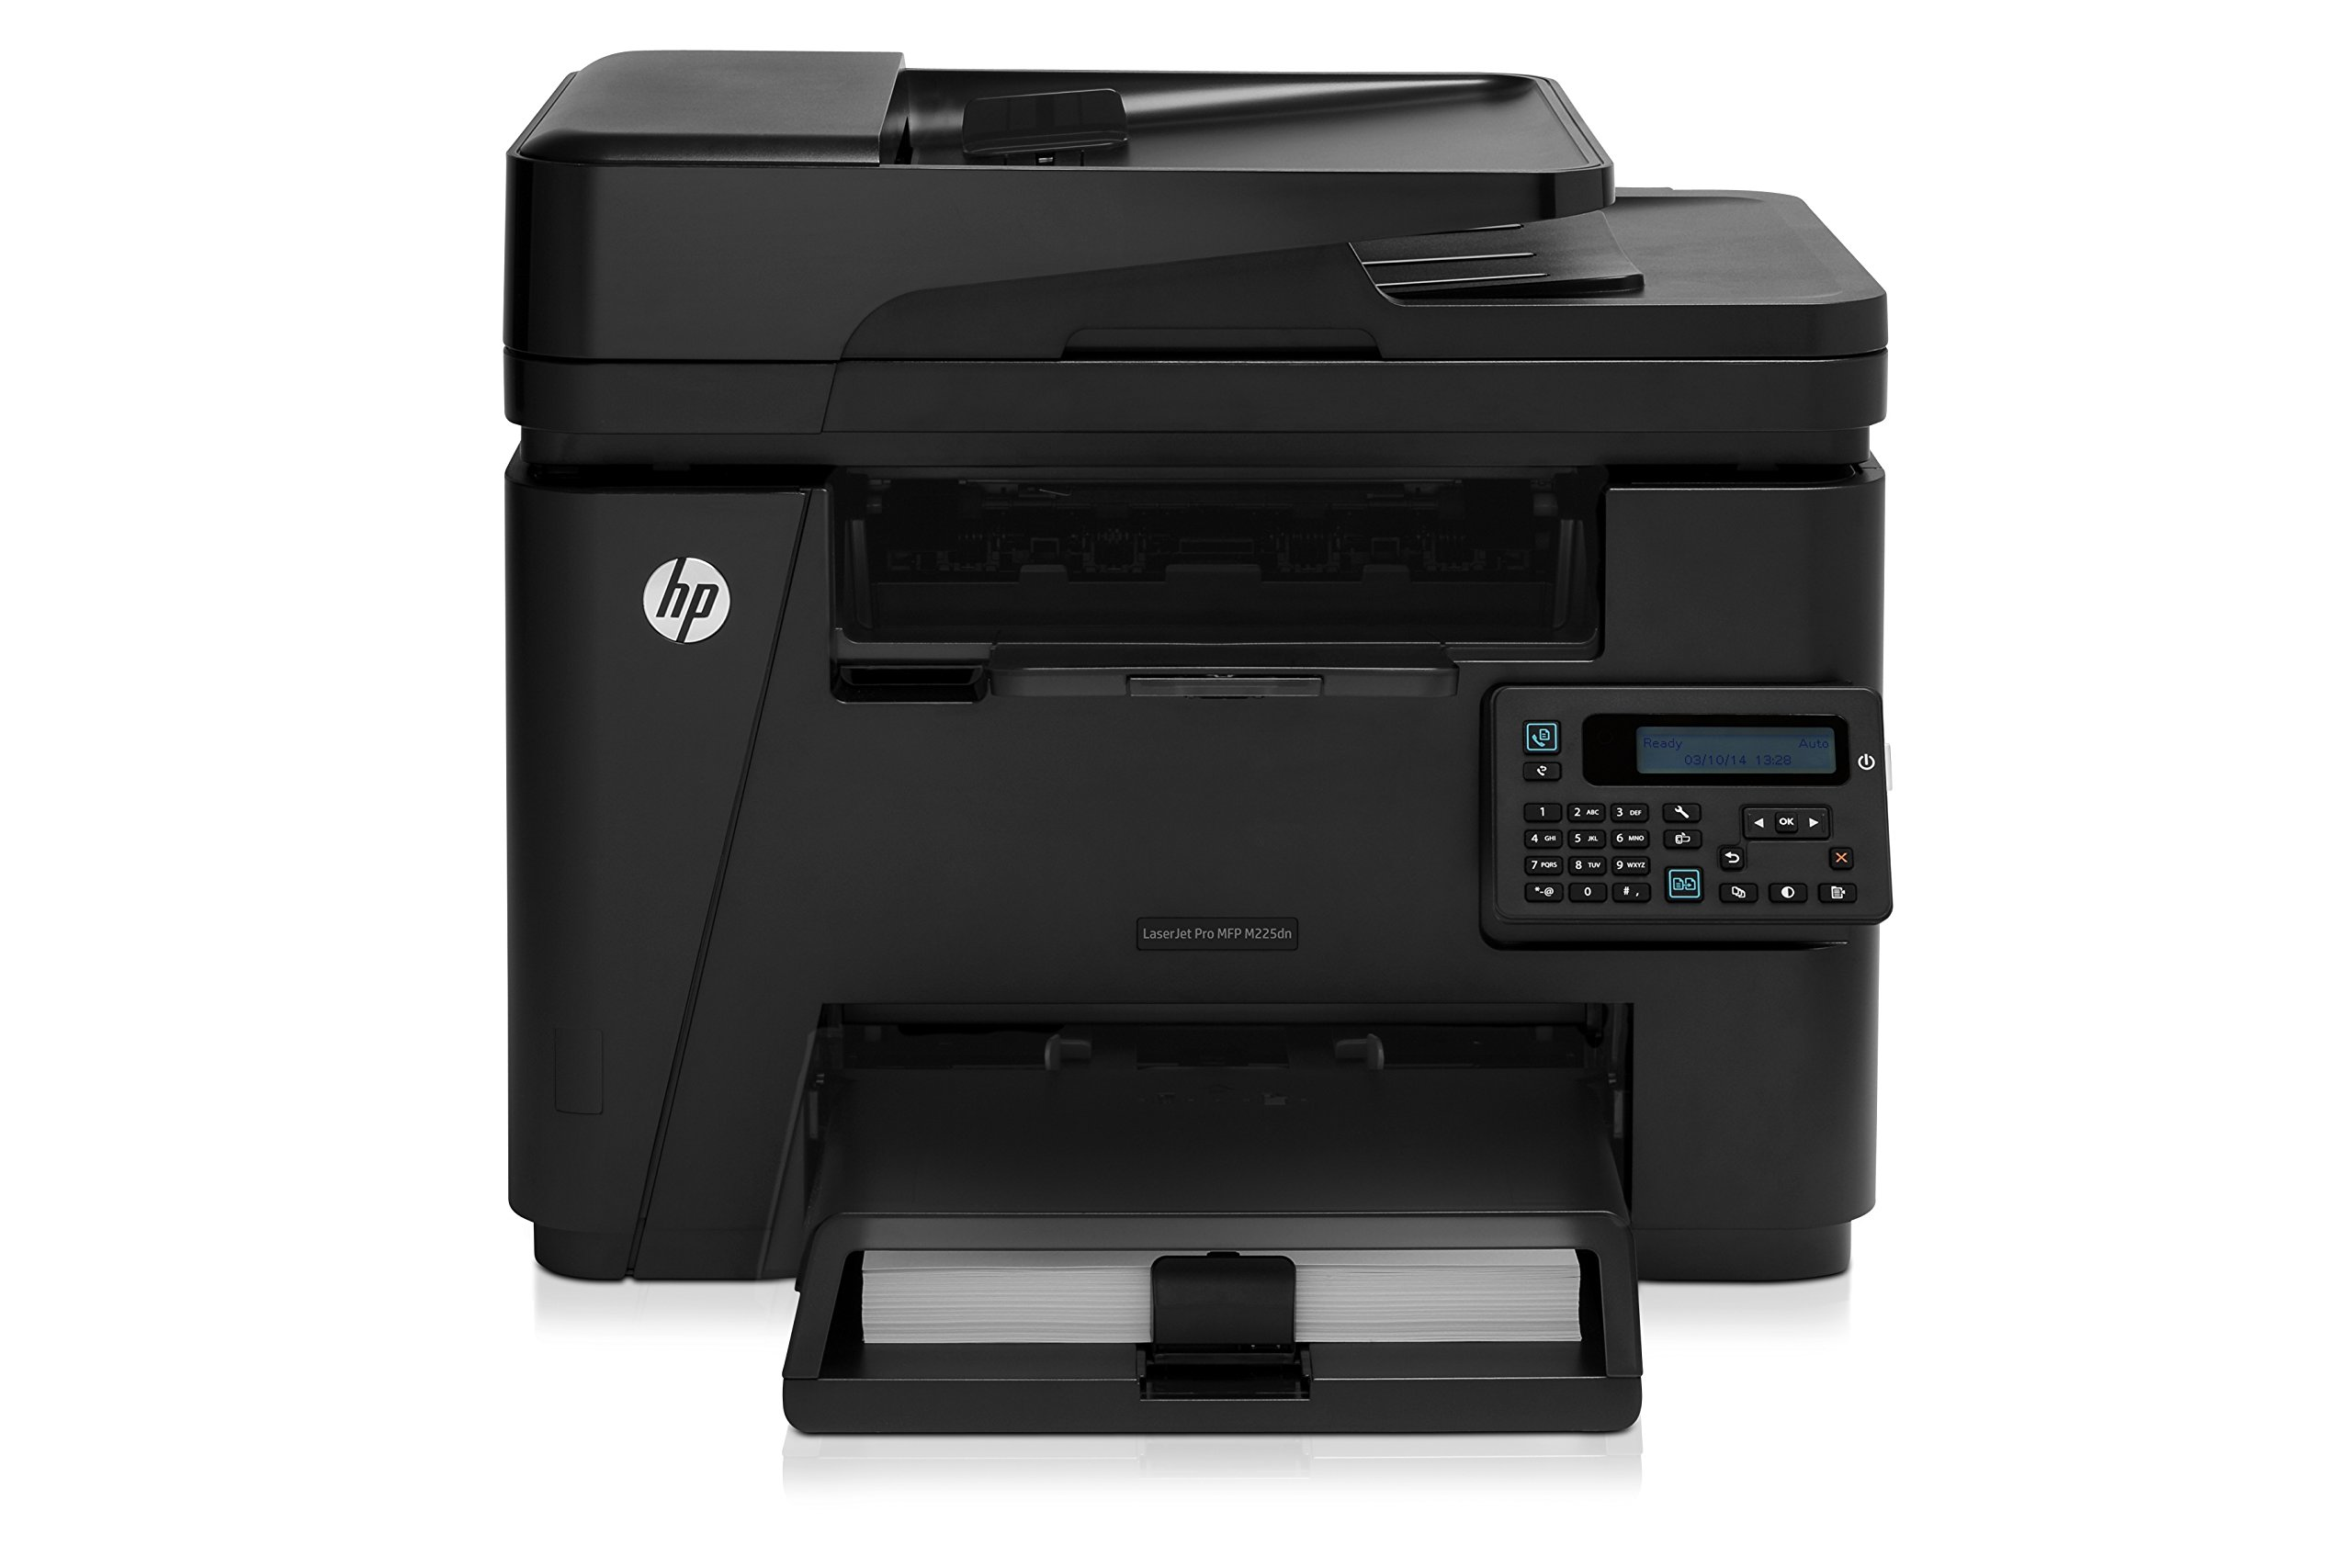 HP LaserJet Pro M225dn Monochrome Printer with Scanner, Copier and Fax, (CF484A) by HP